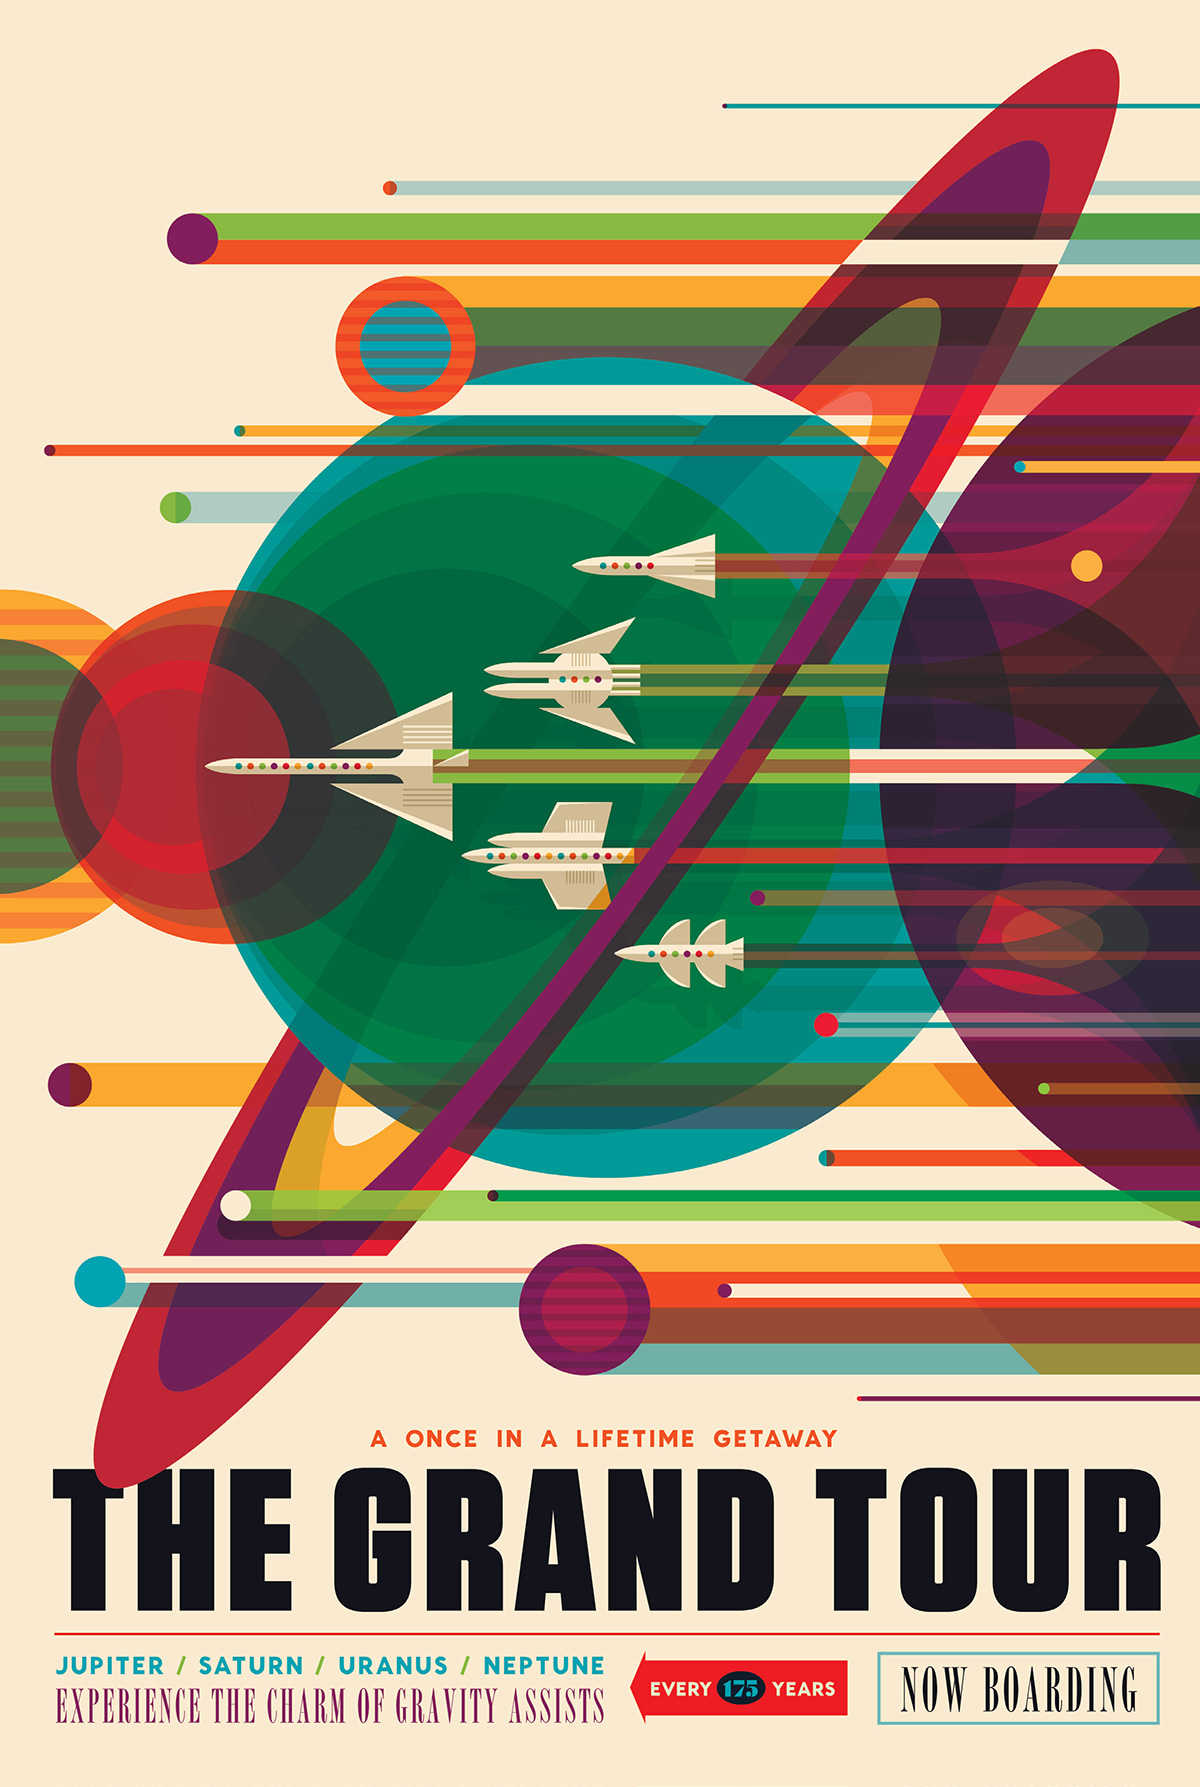 Stylish NASA Posters Imagine The Future Of Space Tourism